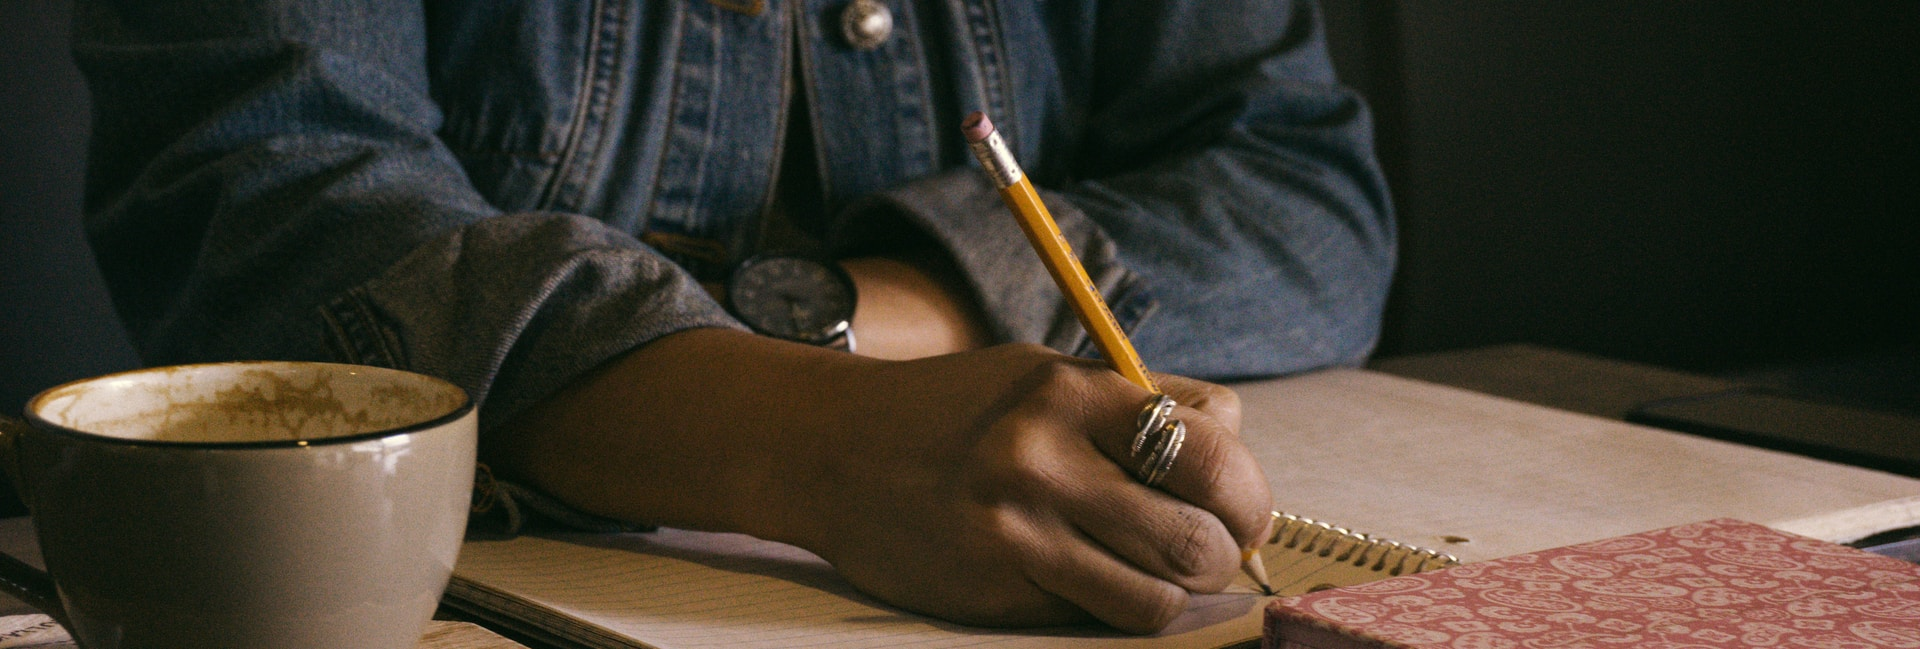 18 imaginative journaling prompts to help you when you don't know what to write